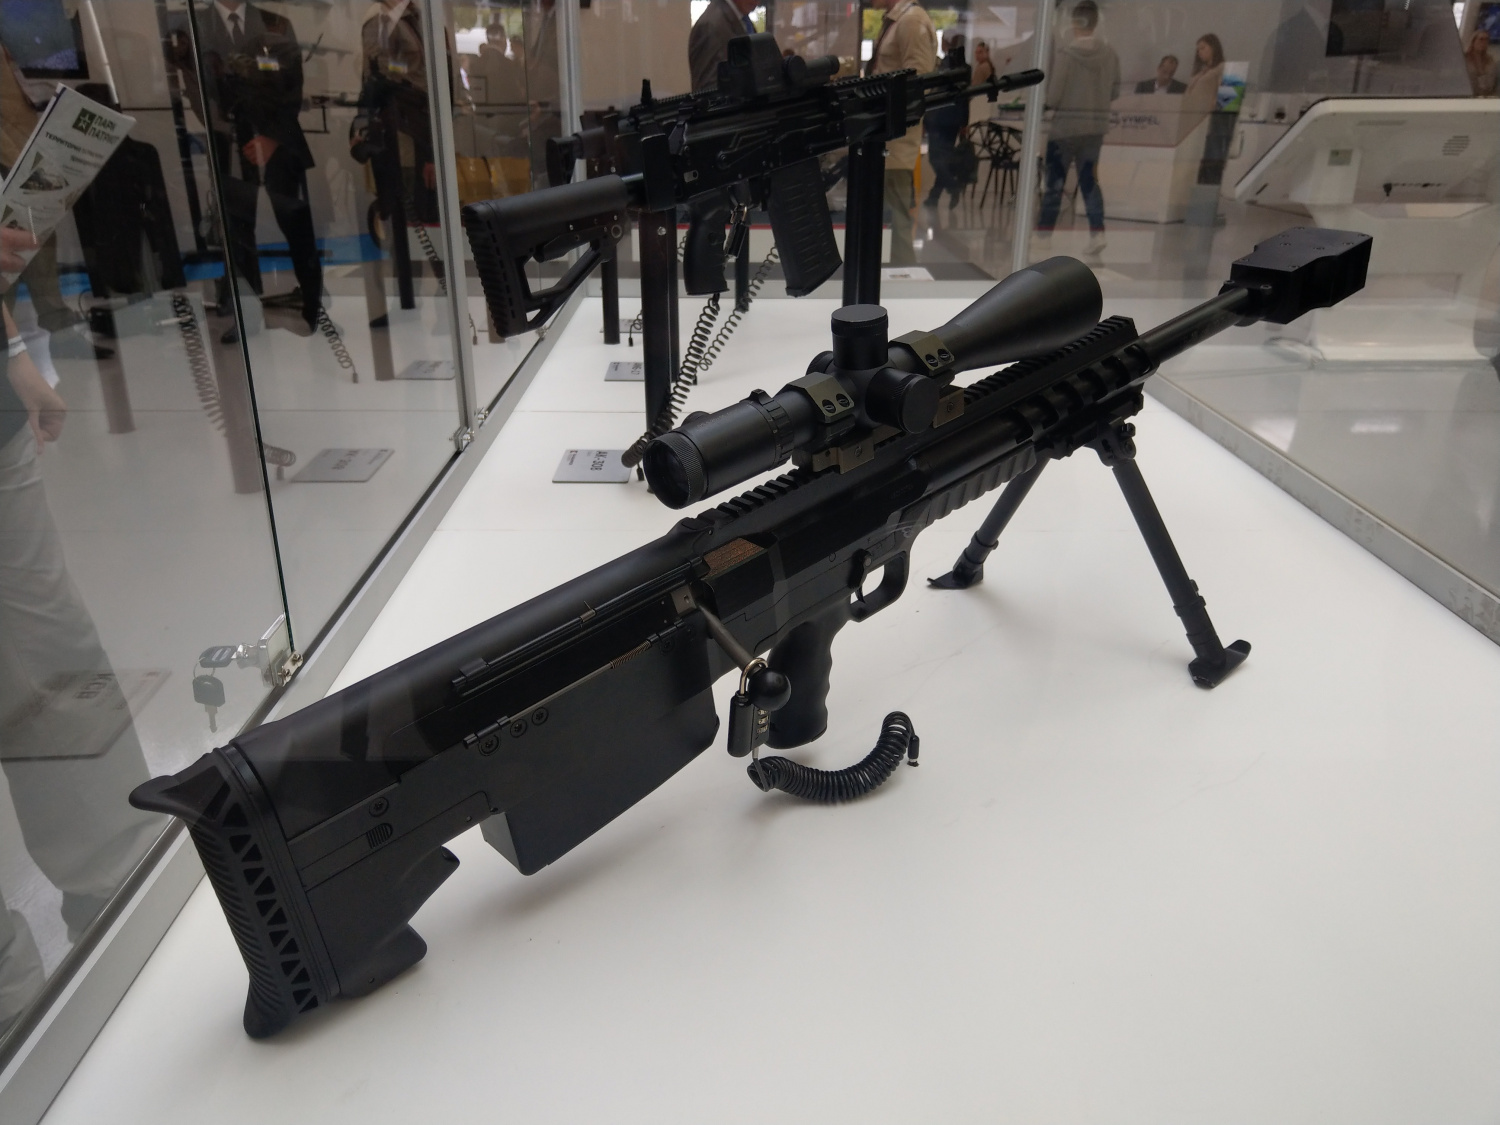 Anti Materiel Rifle army-2019] new russian sv-18 anti-materiel rifle